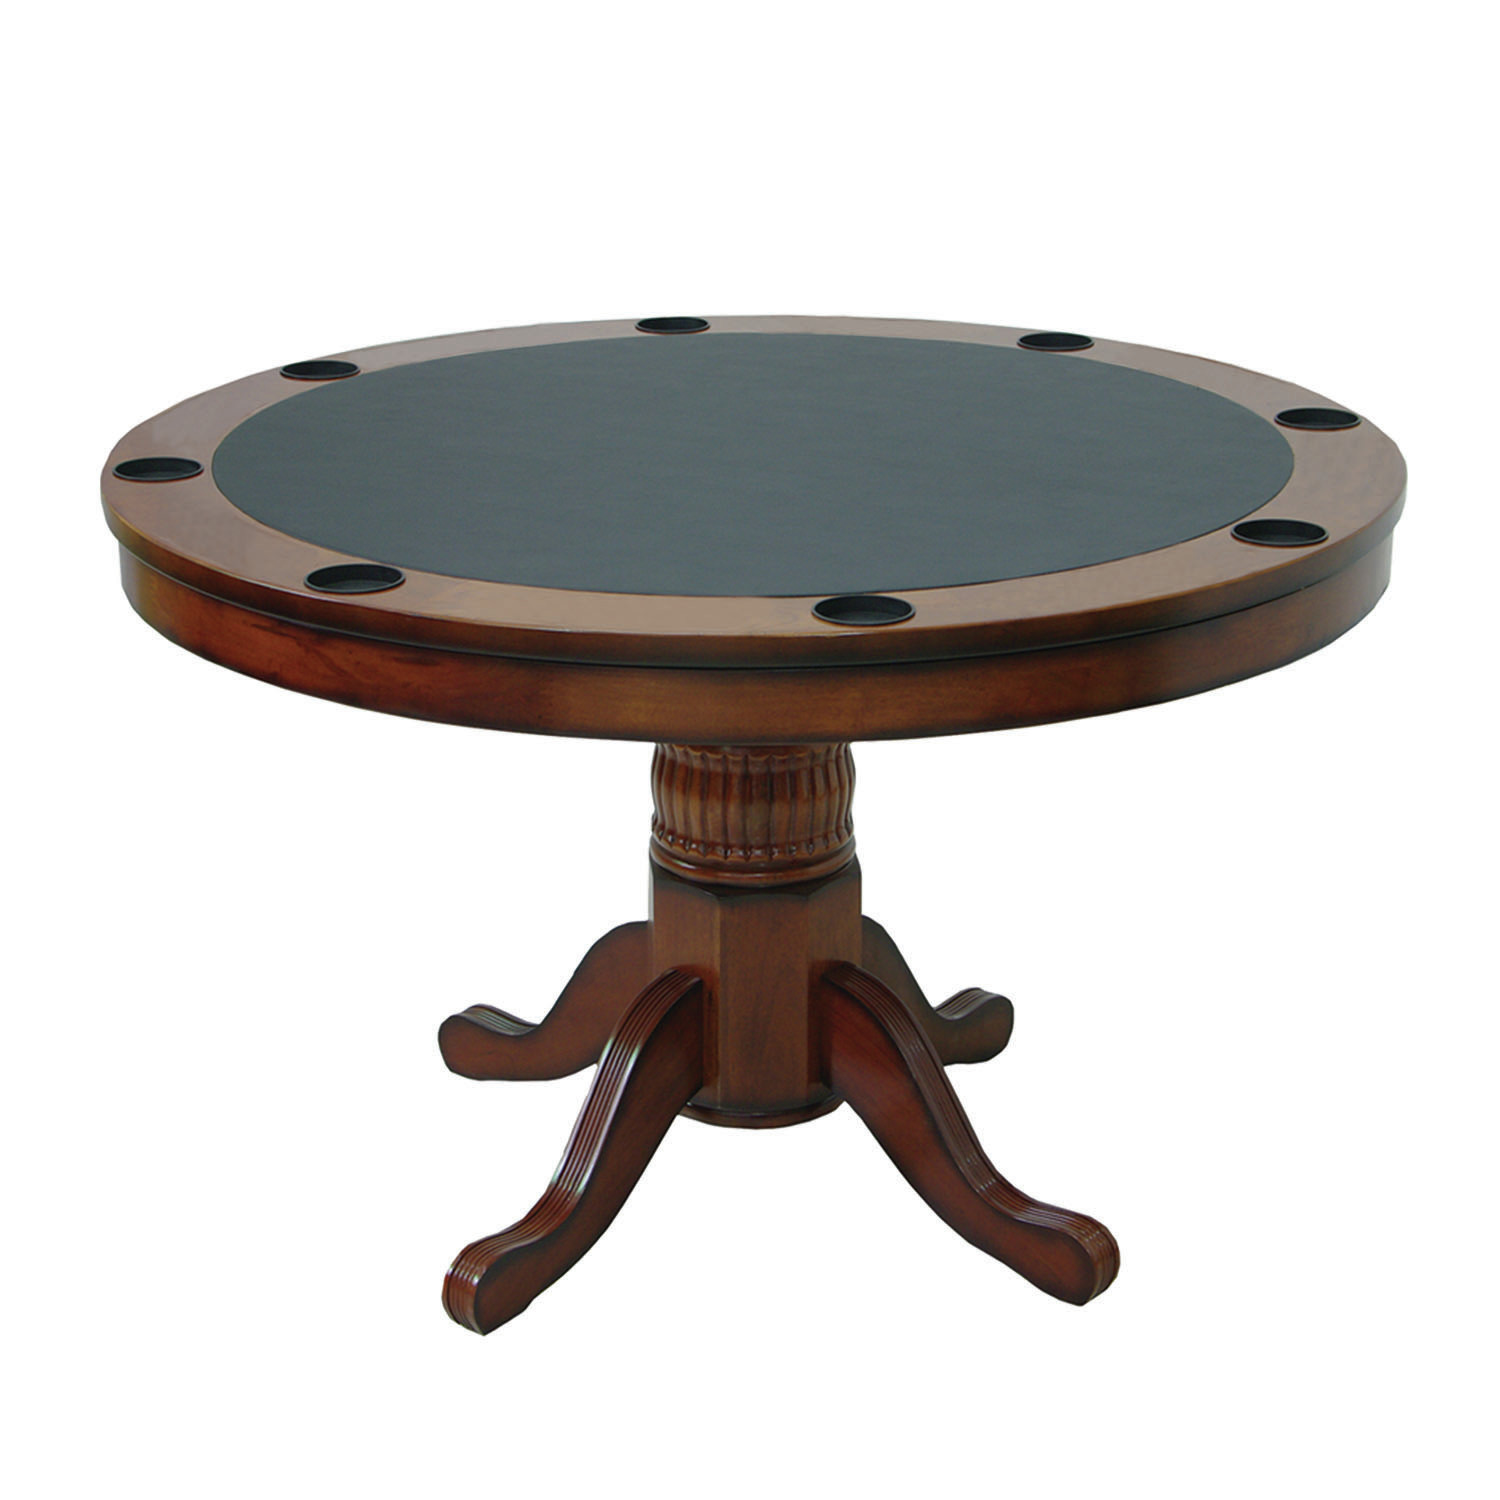 Best ideas about Game Room Table . Save or Pin RAM Game Room Round Poker Table & Reviews Now.